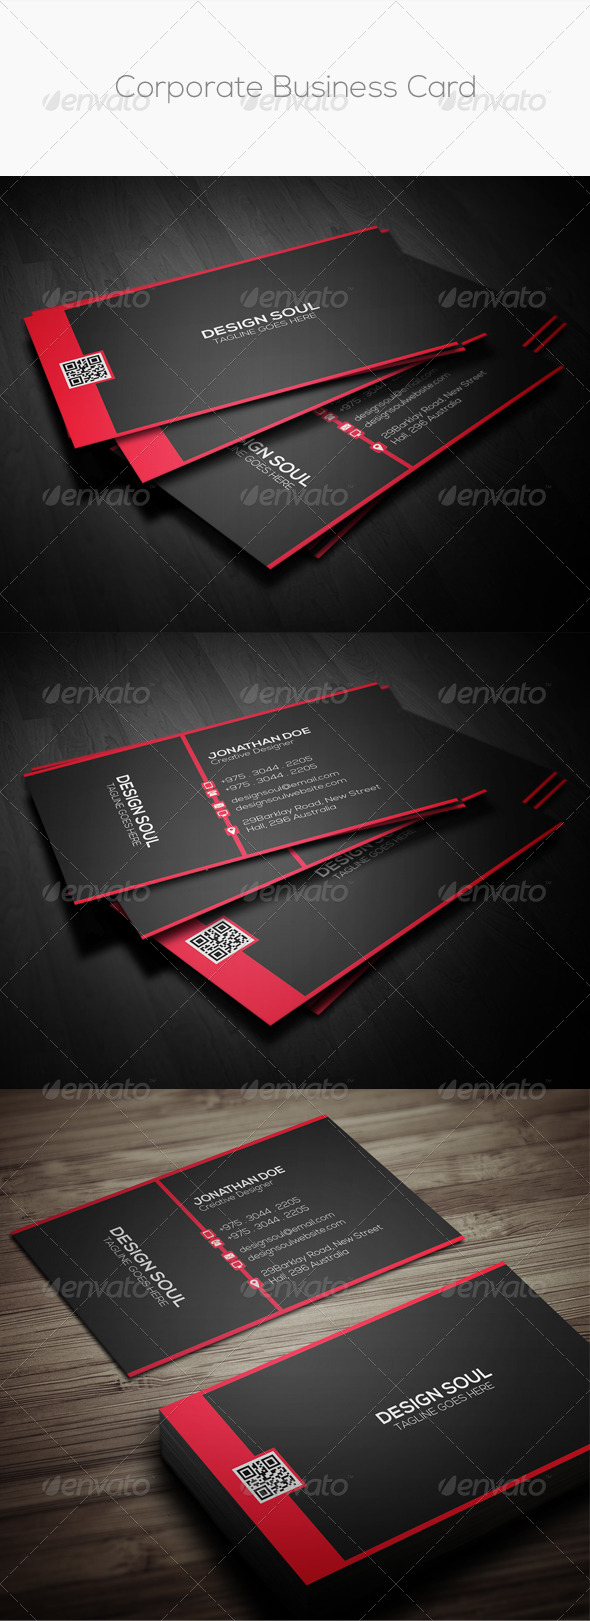 GraphicRiver Corporate Business Card 8609253